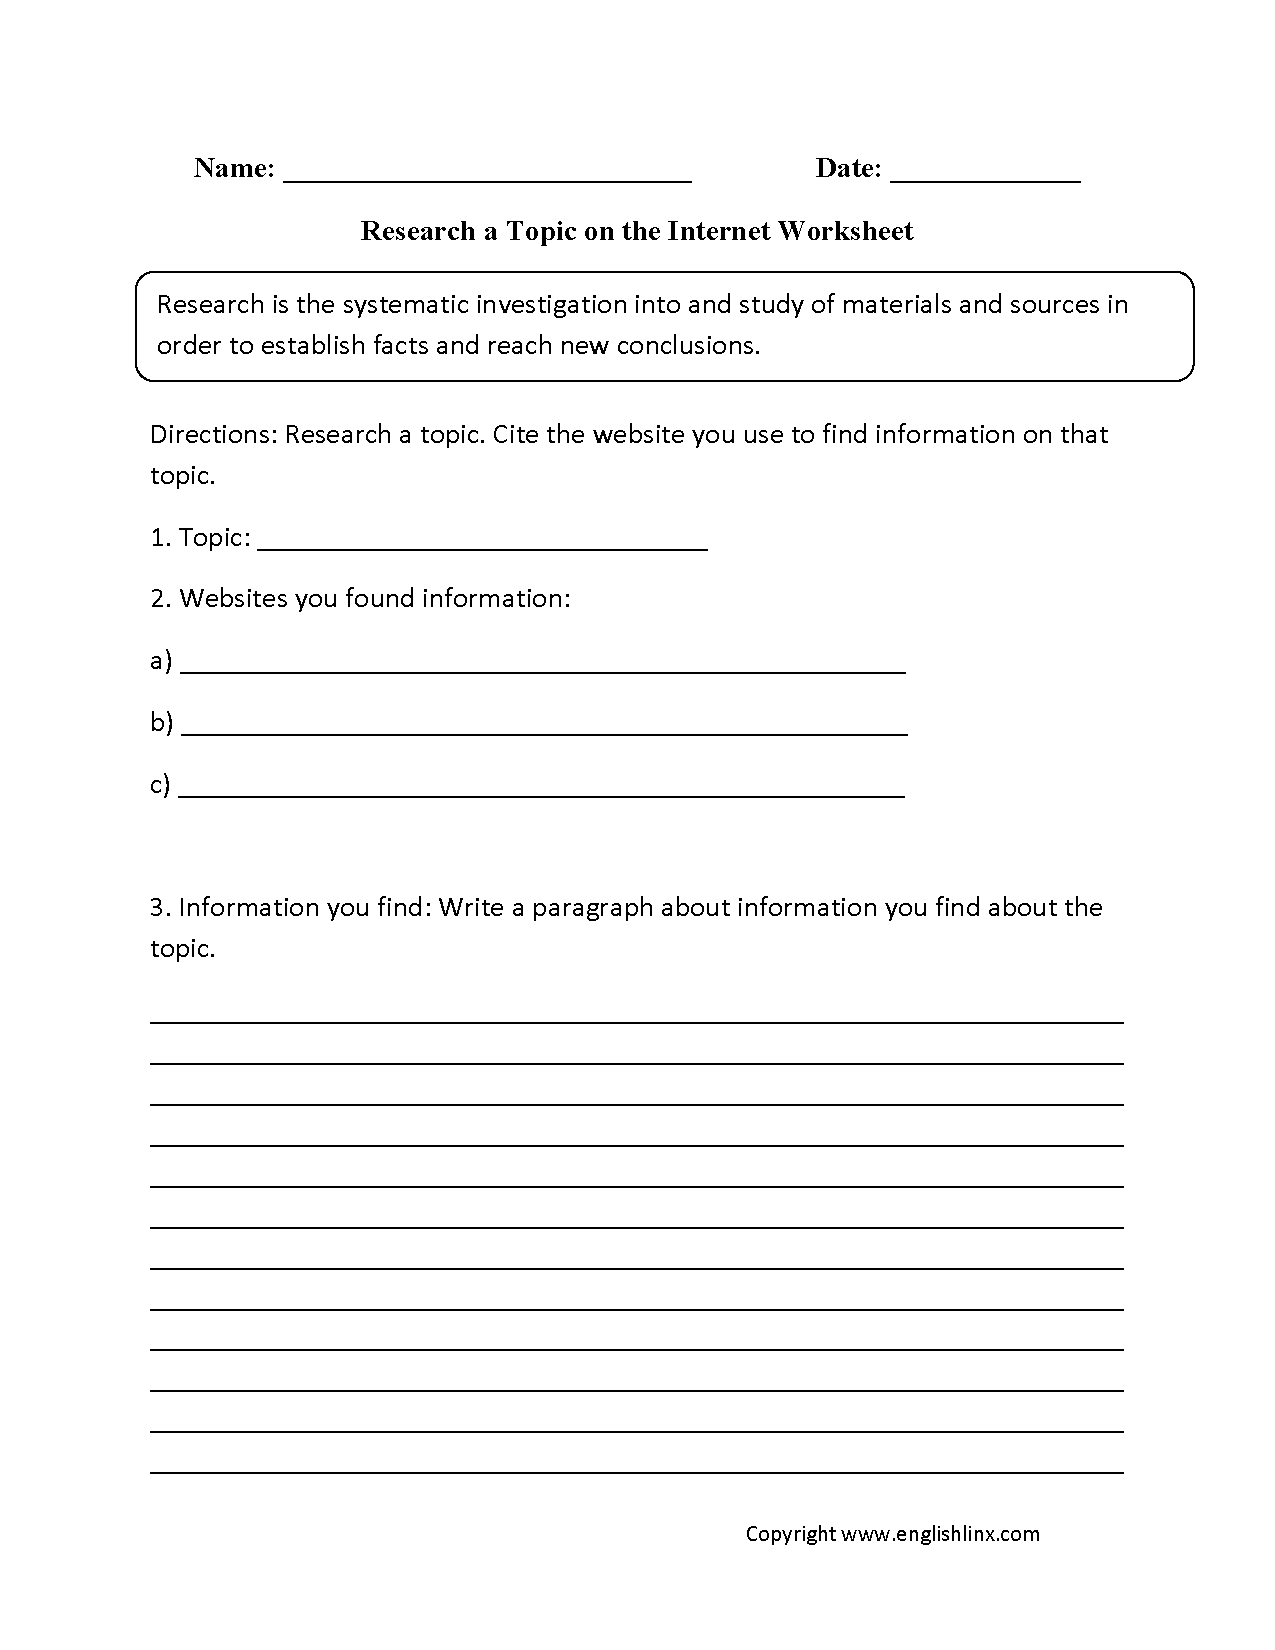 Aldiablosus  Scenic Englishlinxcom  Research Worksheets With Inspiring On The Internet Worksheet With Archaic Parent Functions Worksheet Also Geometric Sequences Worksheet In Addition Heat Transfer Worksheet Answers And Composite Function Worksheet As Well As Simple Sentences Worksheet Additionally Photosynthesis Making Energy Worksheet Answers From Englishlinxcom With Aldiablosus  Inspiring Englishlinxcom  Research Worksheets With Archaic On The Internet Worksheet And Scenic Parent Functions Worksheet Also Geometric Sequences Worksheet In Addition Heat Transfer Worksheet Answers From Englishlinxcom